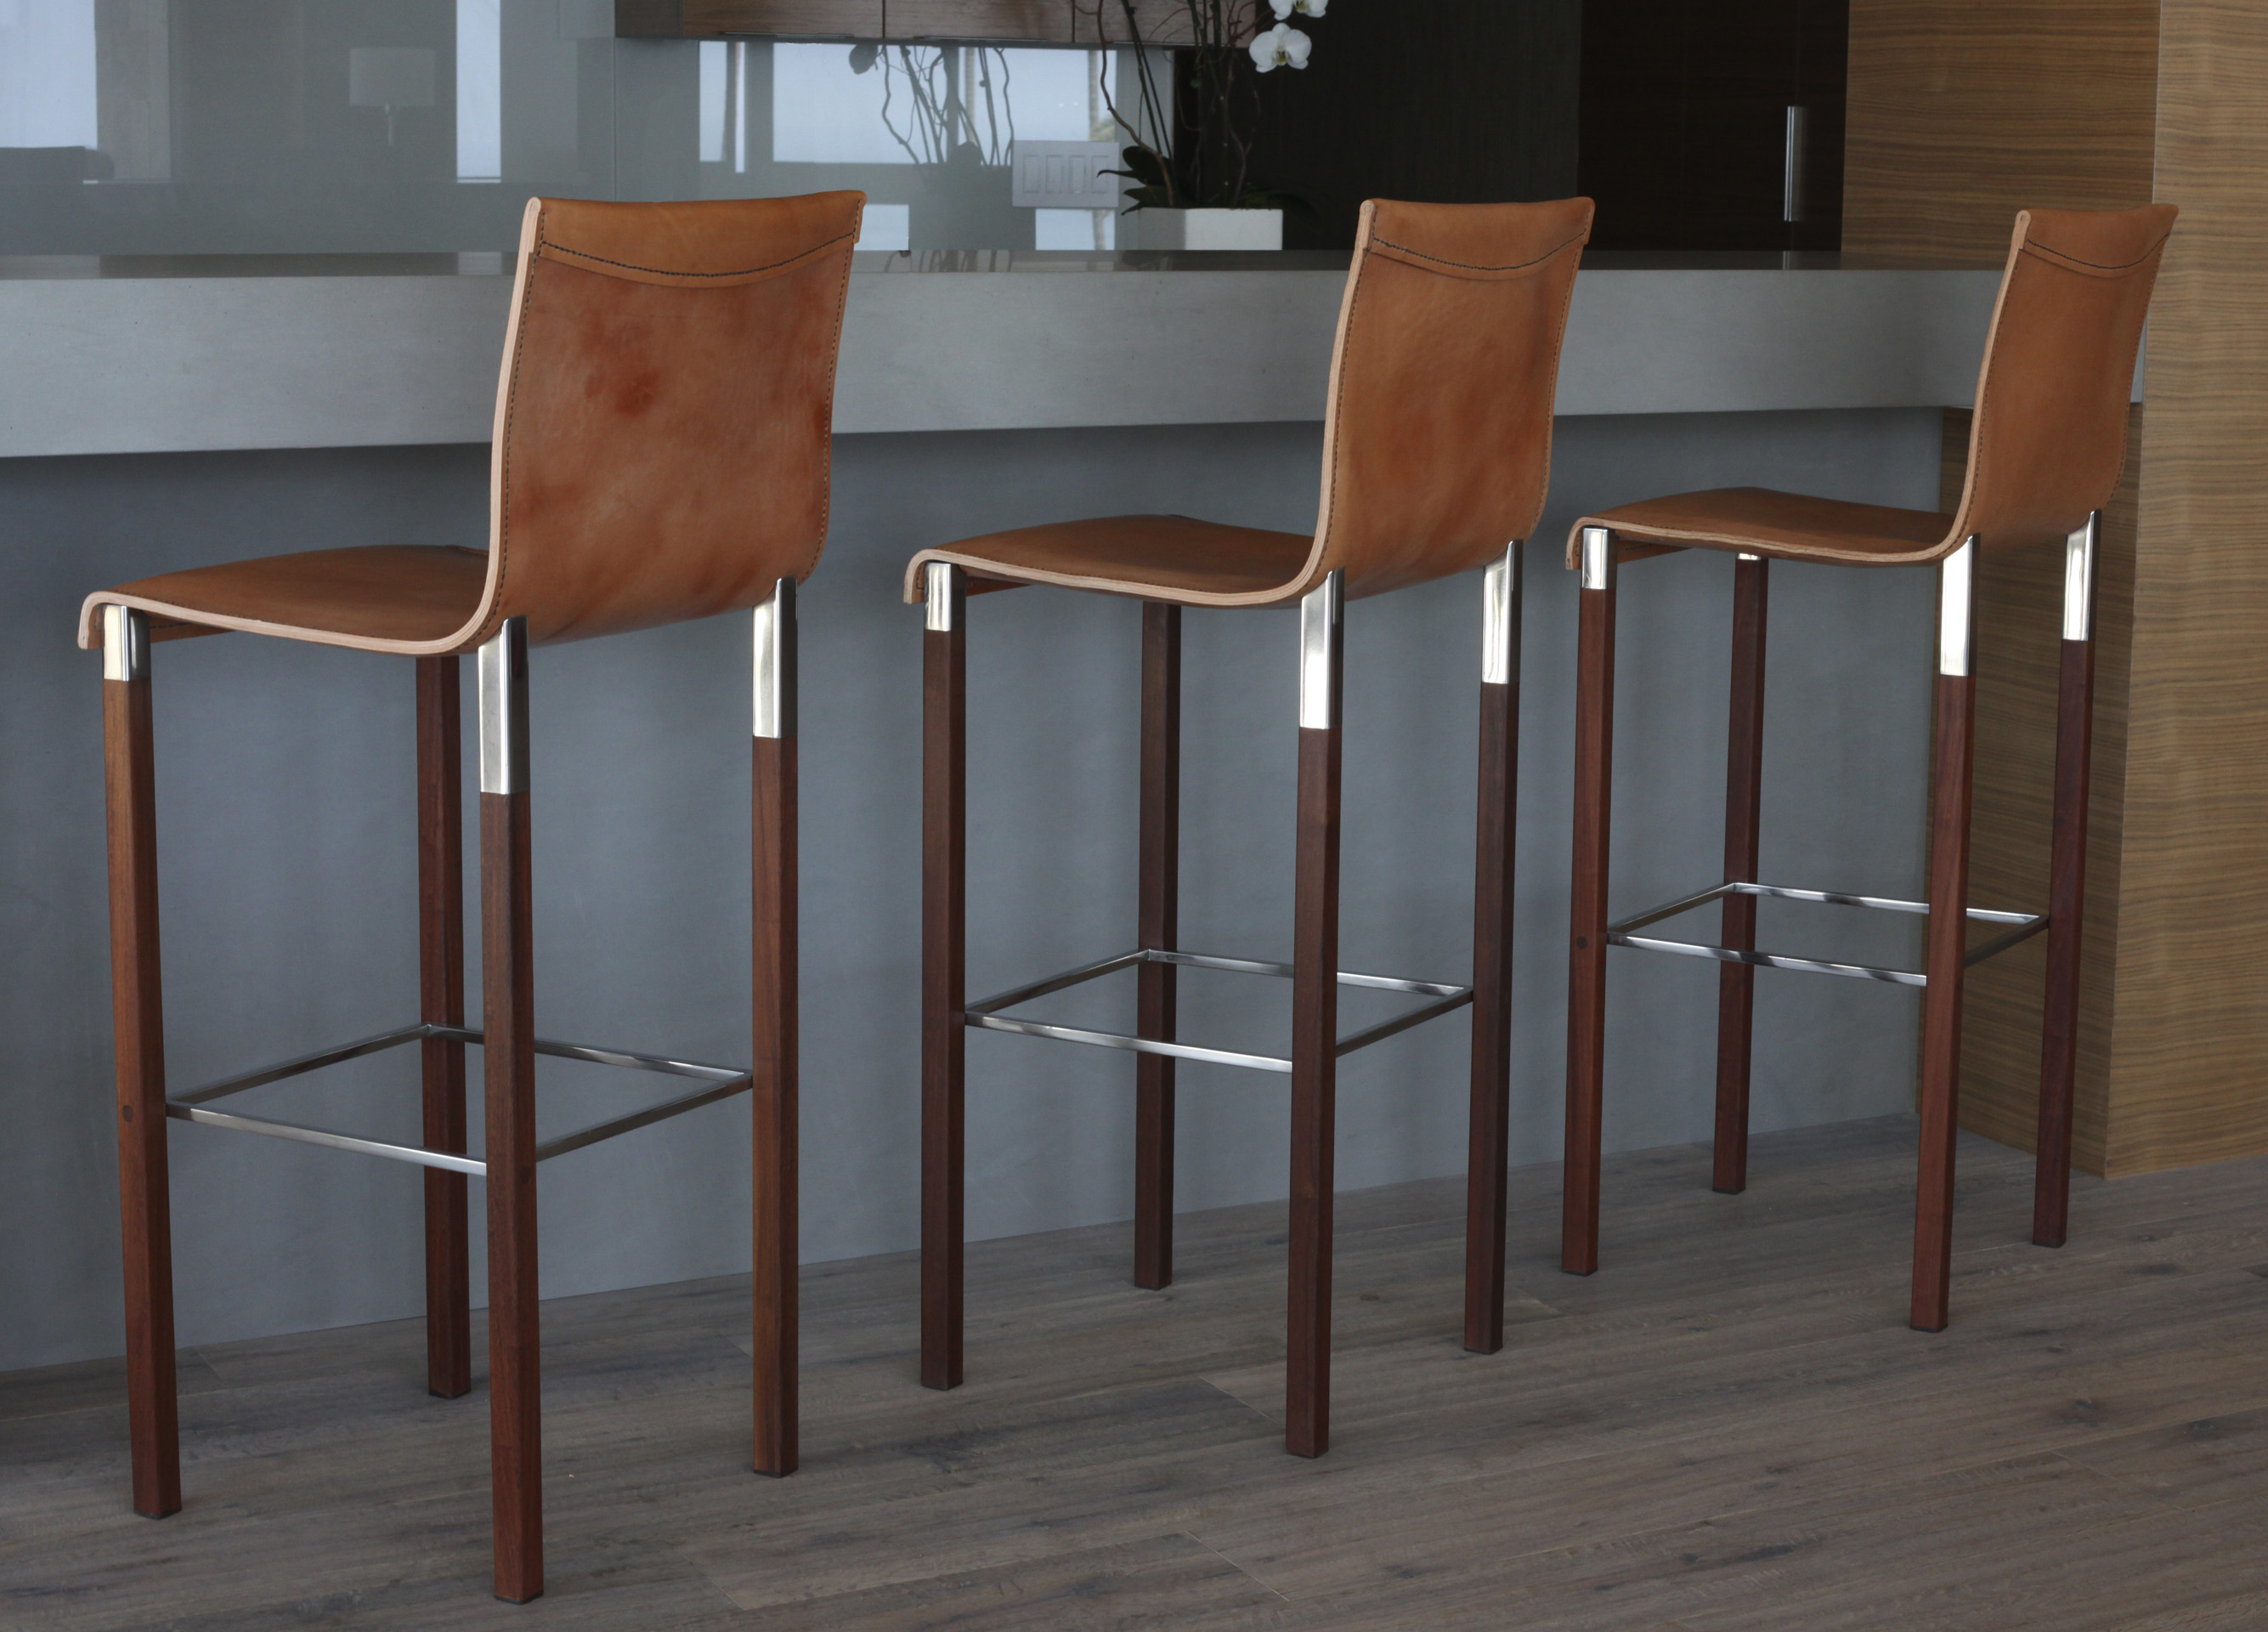 Terrific Designer Chairs And Furniture Gallery Zele Gmtry Best Dining Table And Chair Ideas Images Gmtryco